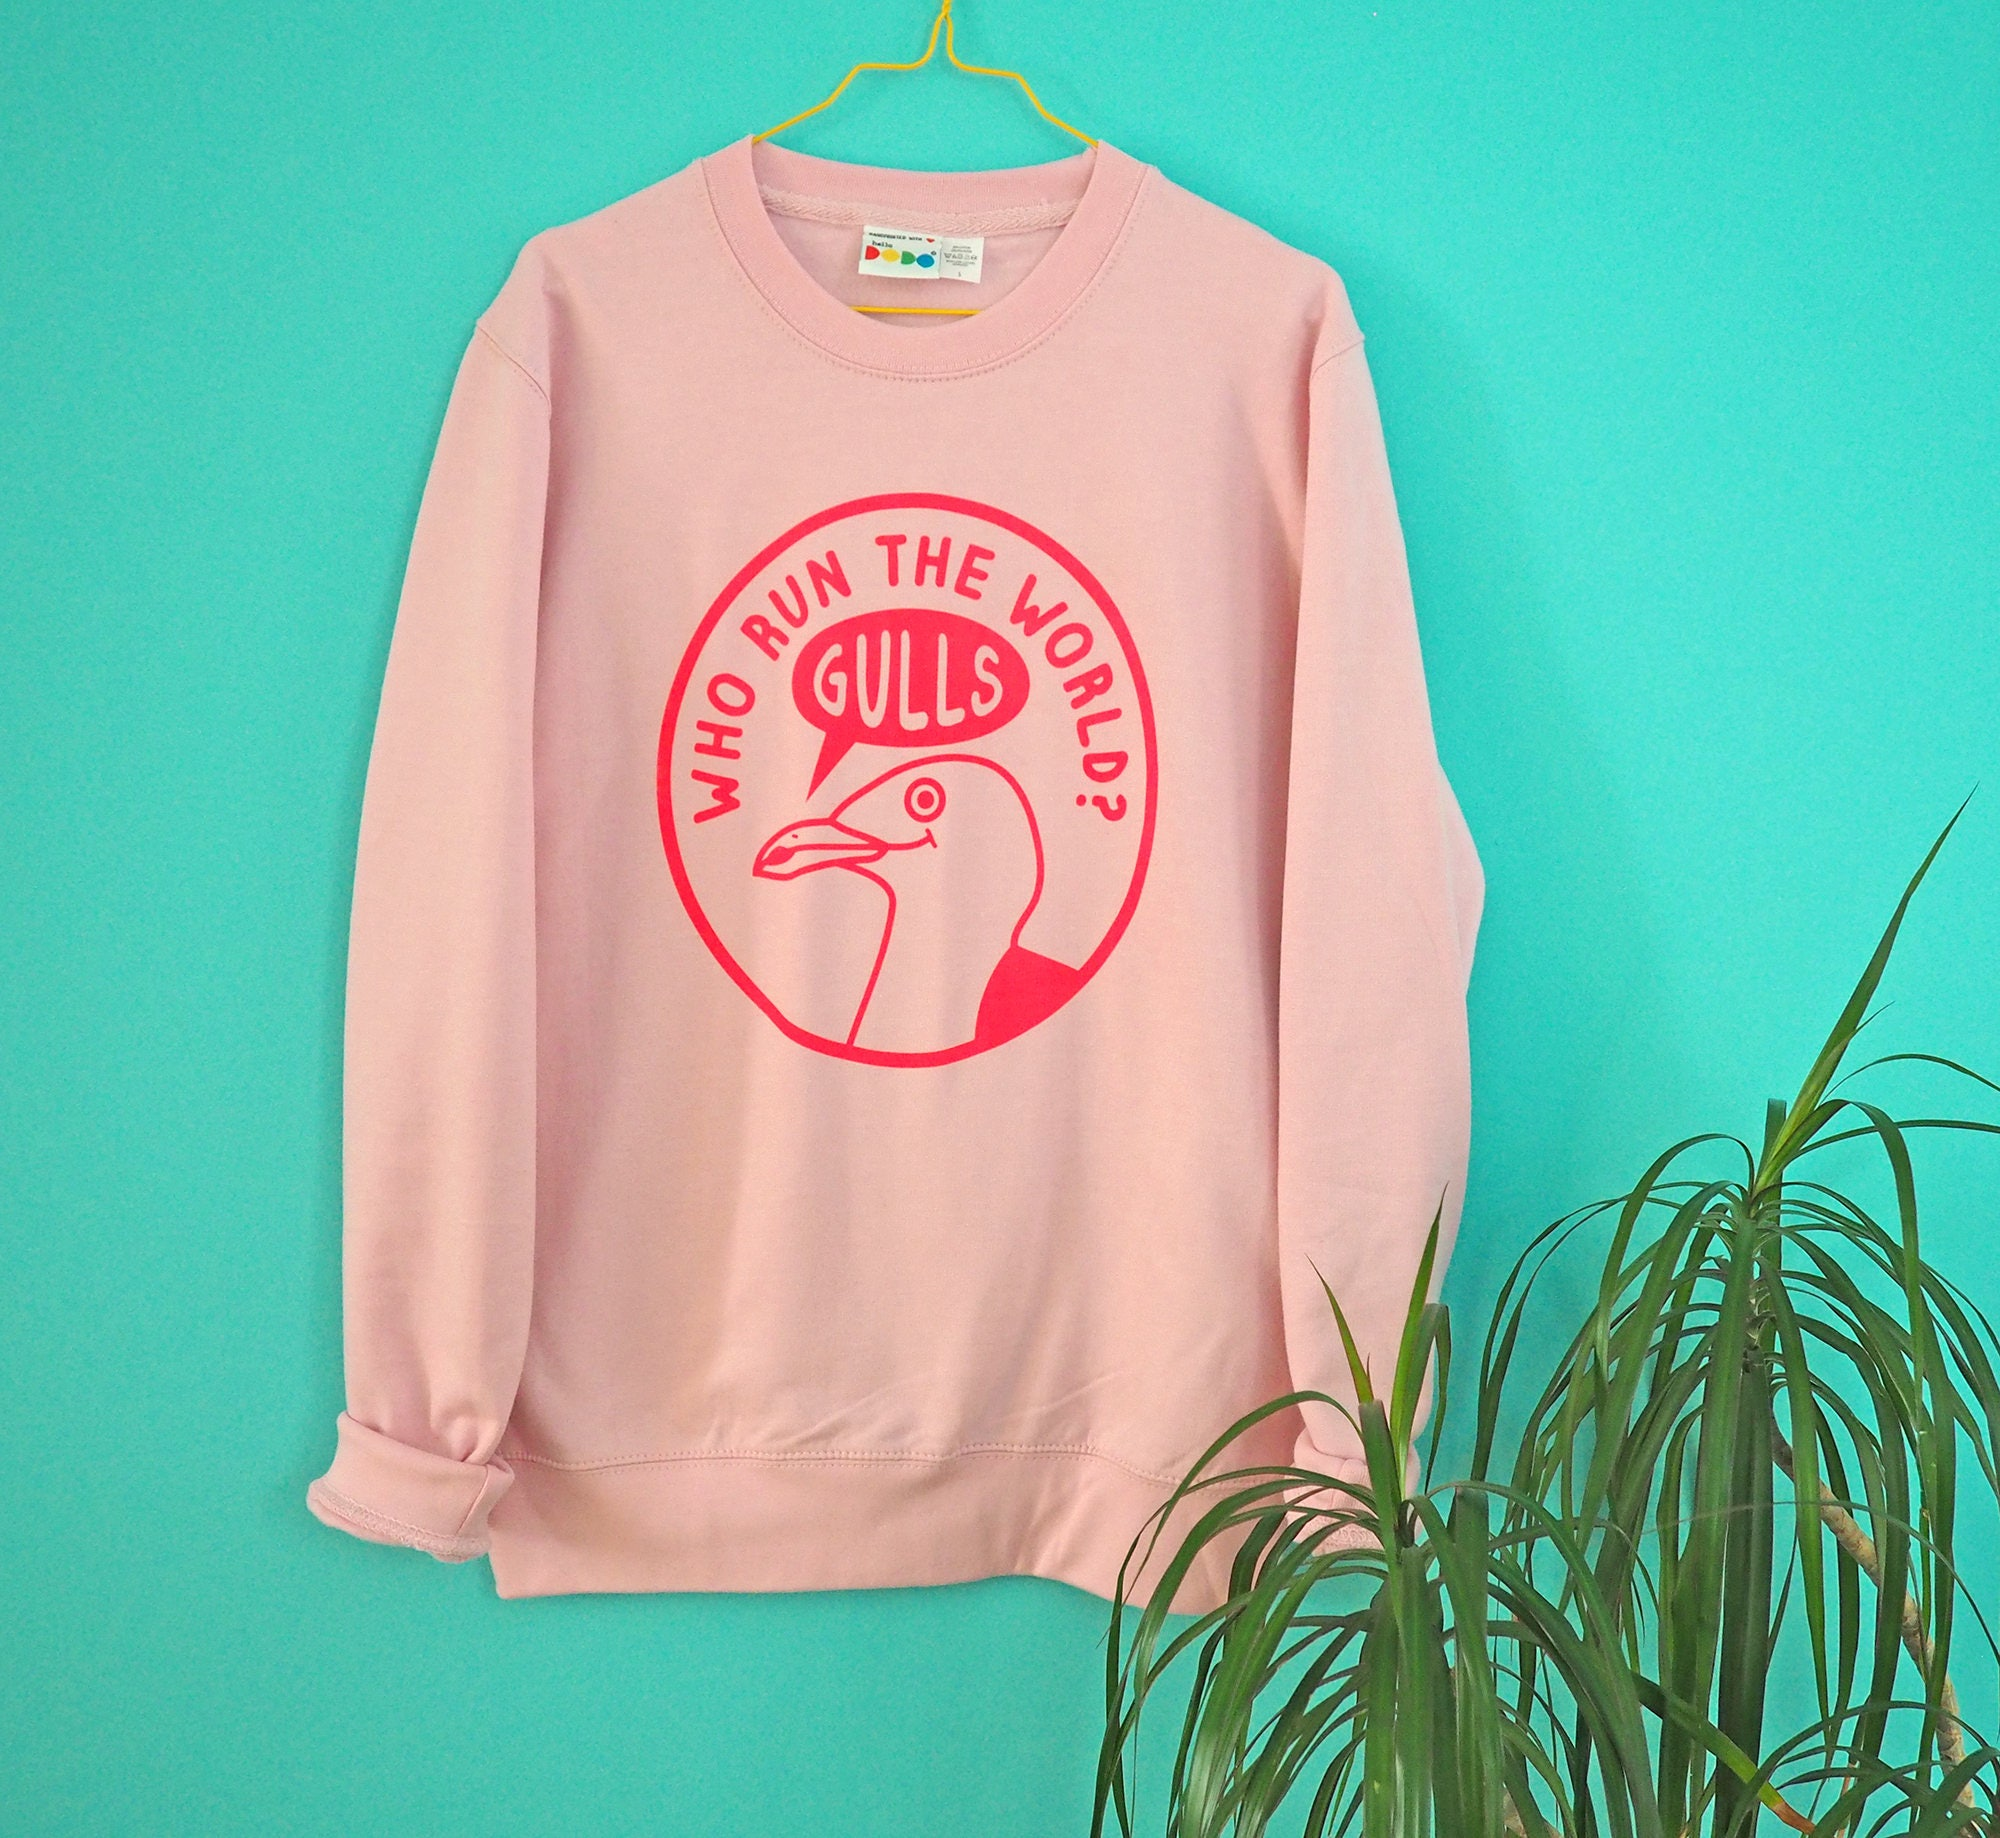 Who Run the World Jumper Pink Jumper Seagull Cute Sweater | Etsy